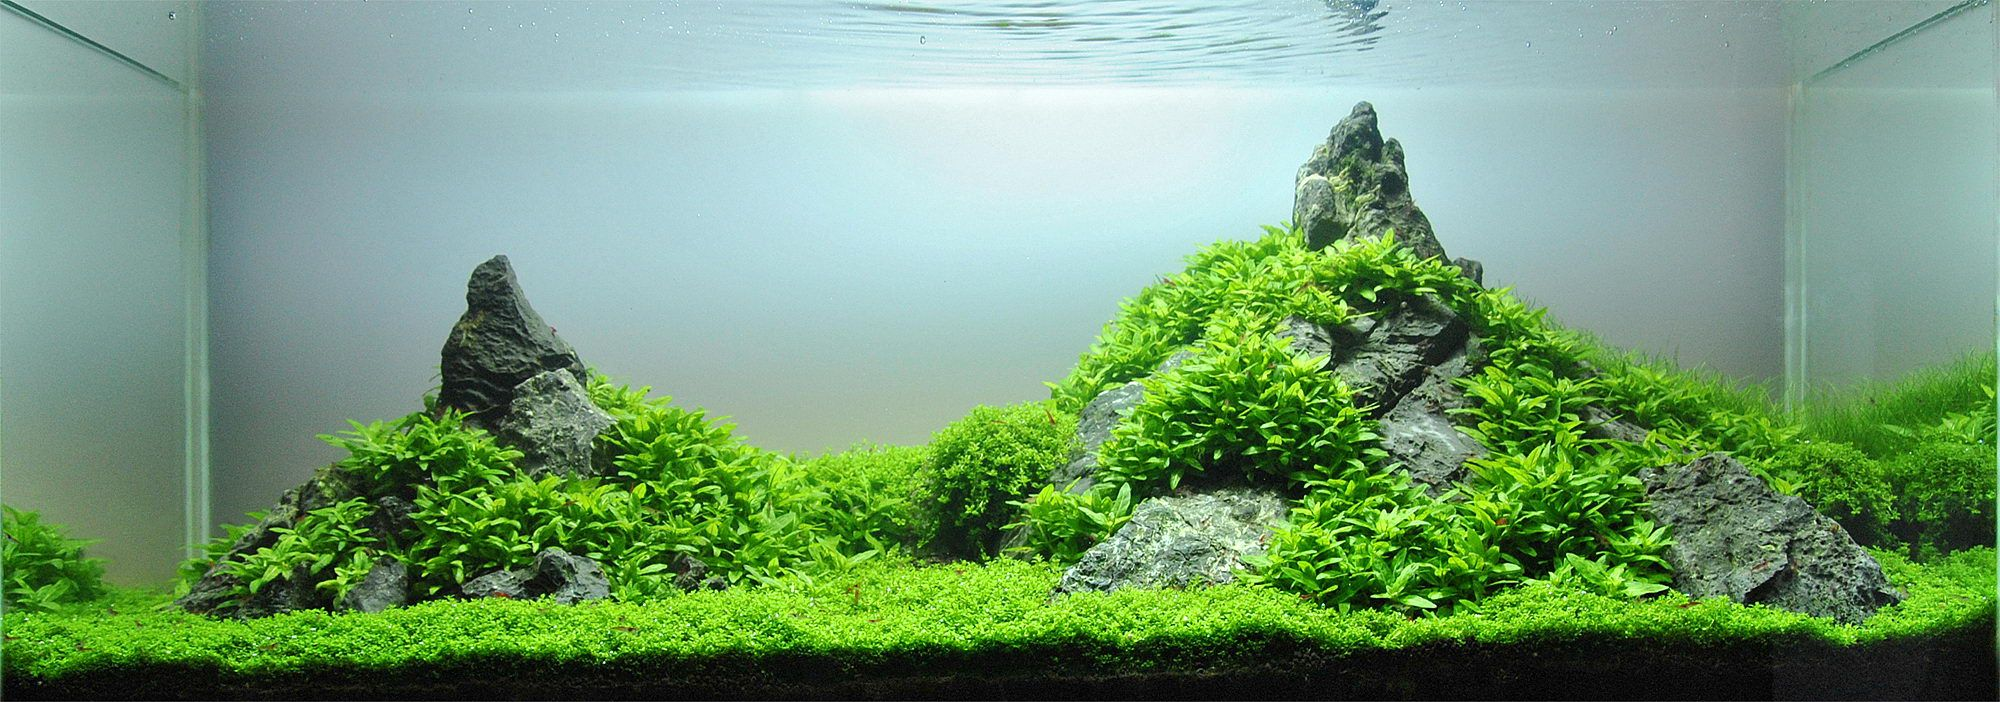 Carpeting Is Not Rocket Science But Carpeting Plants Without Co2 Is Tricky Here Is A Step By Step Guide To Achieve Planted Aquarium Aquascape Aquascape Design